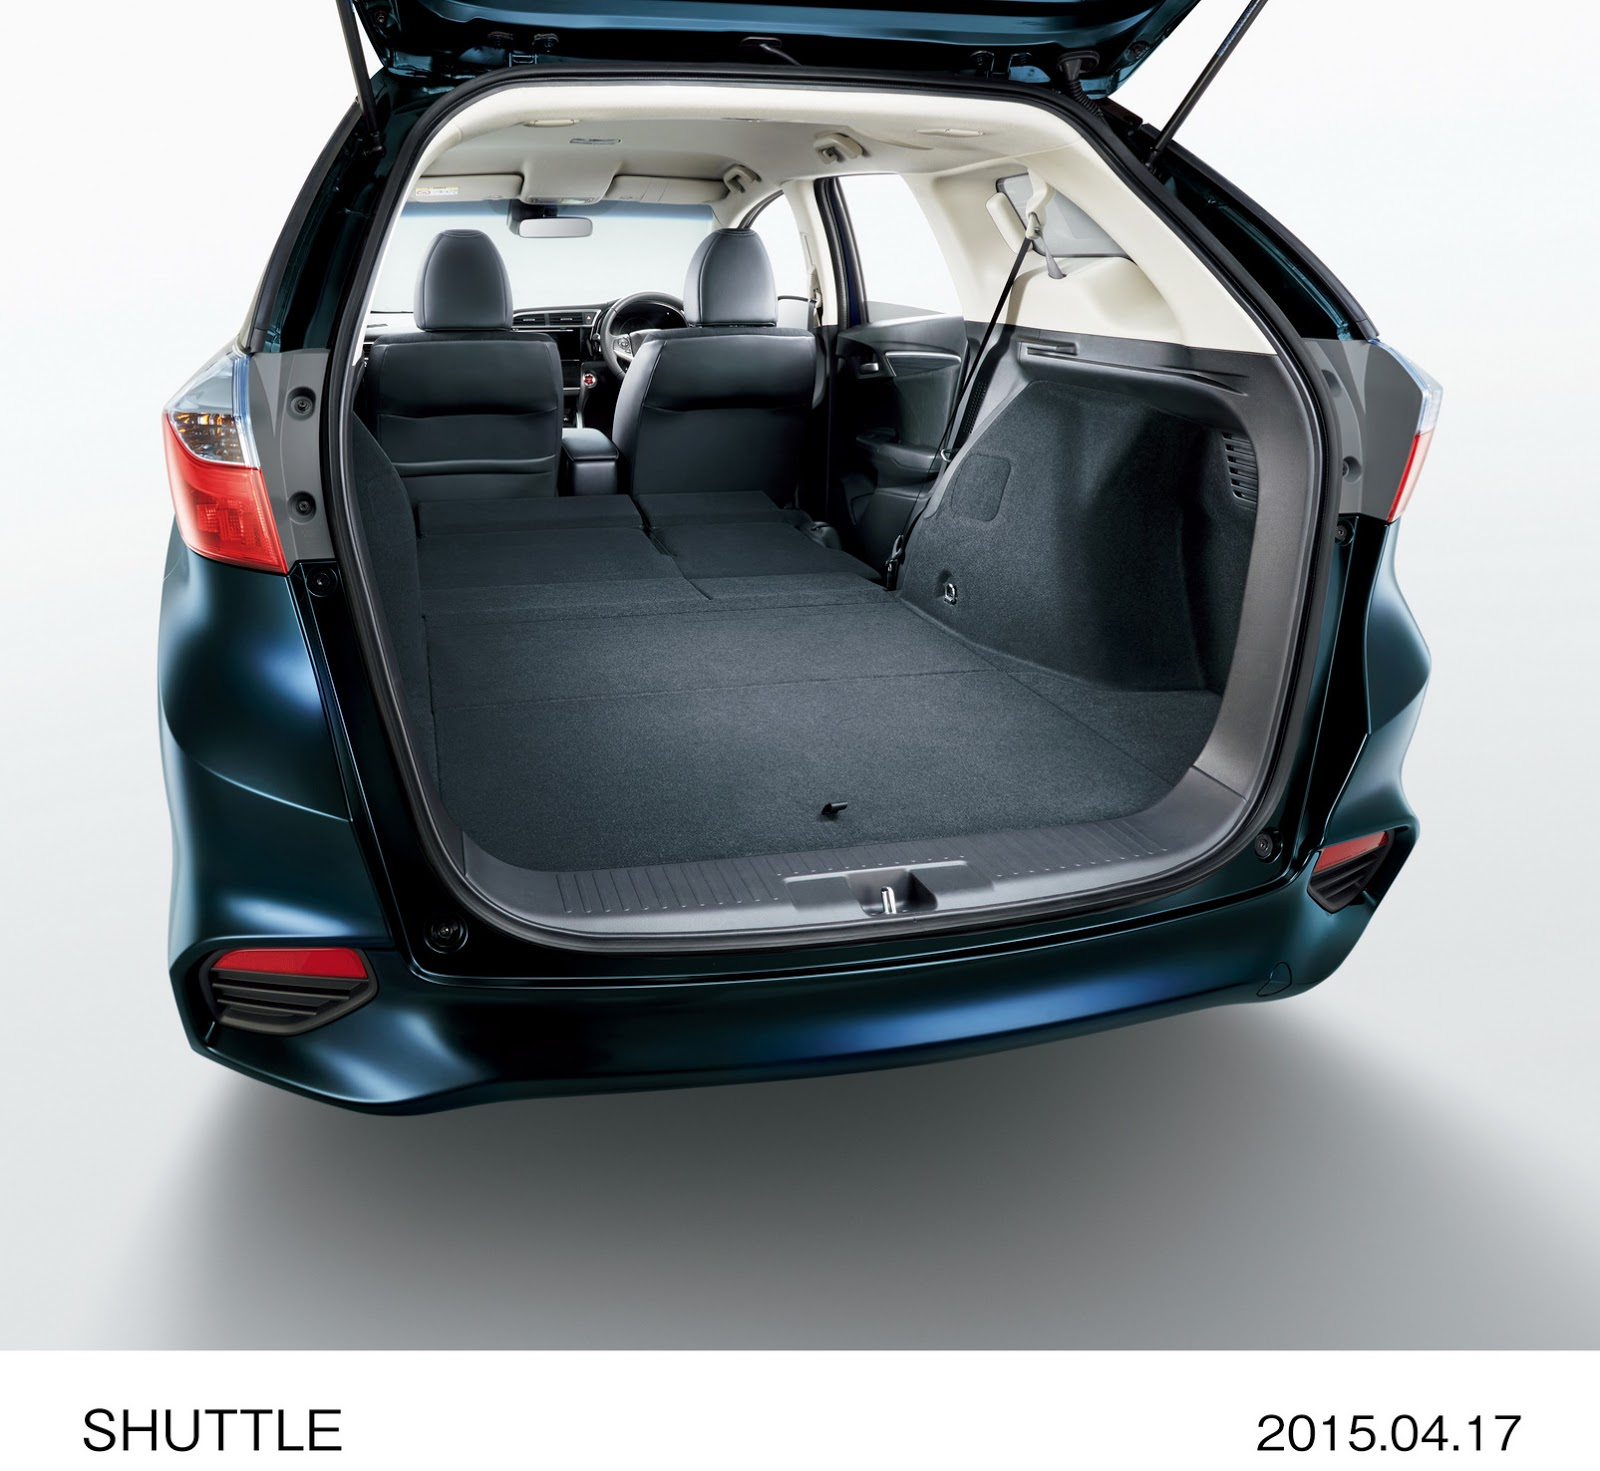 2015 Honda Shuttle Revealed In Japan: The Fit's Wagon